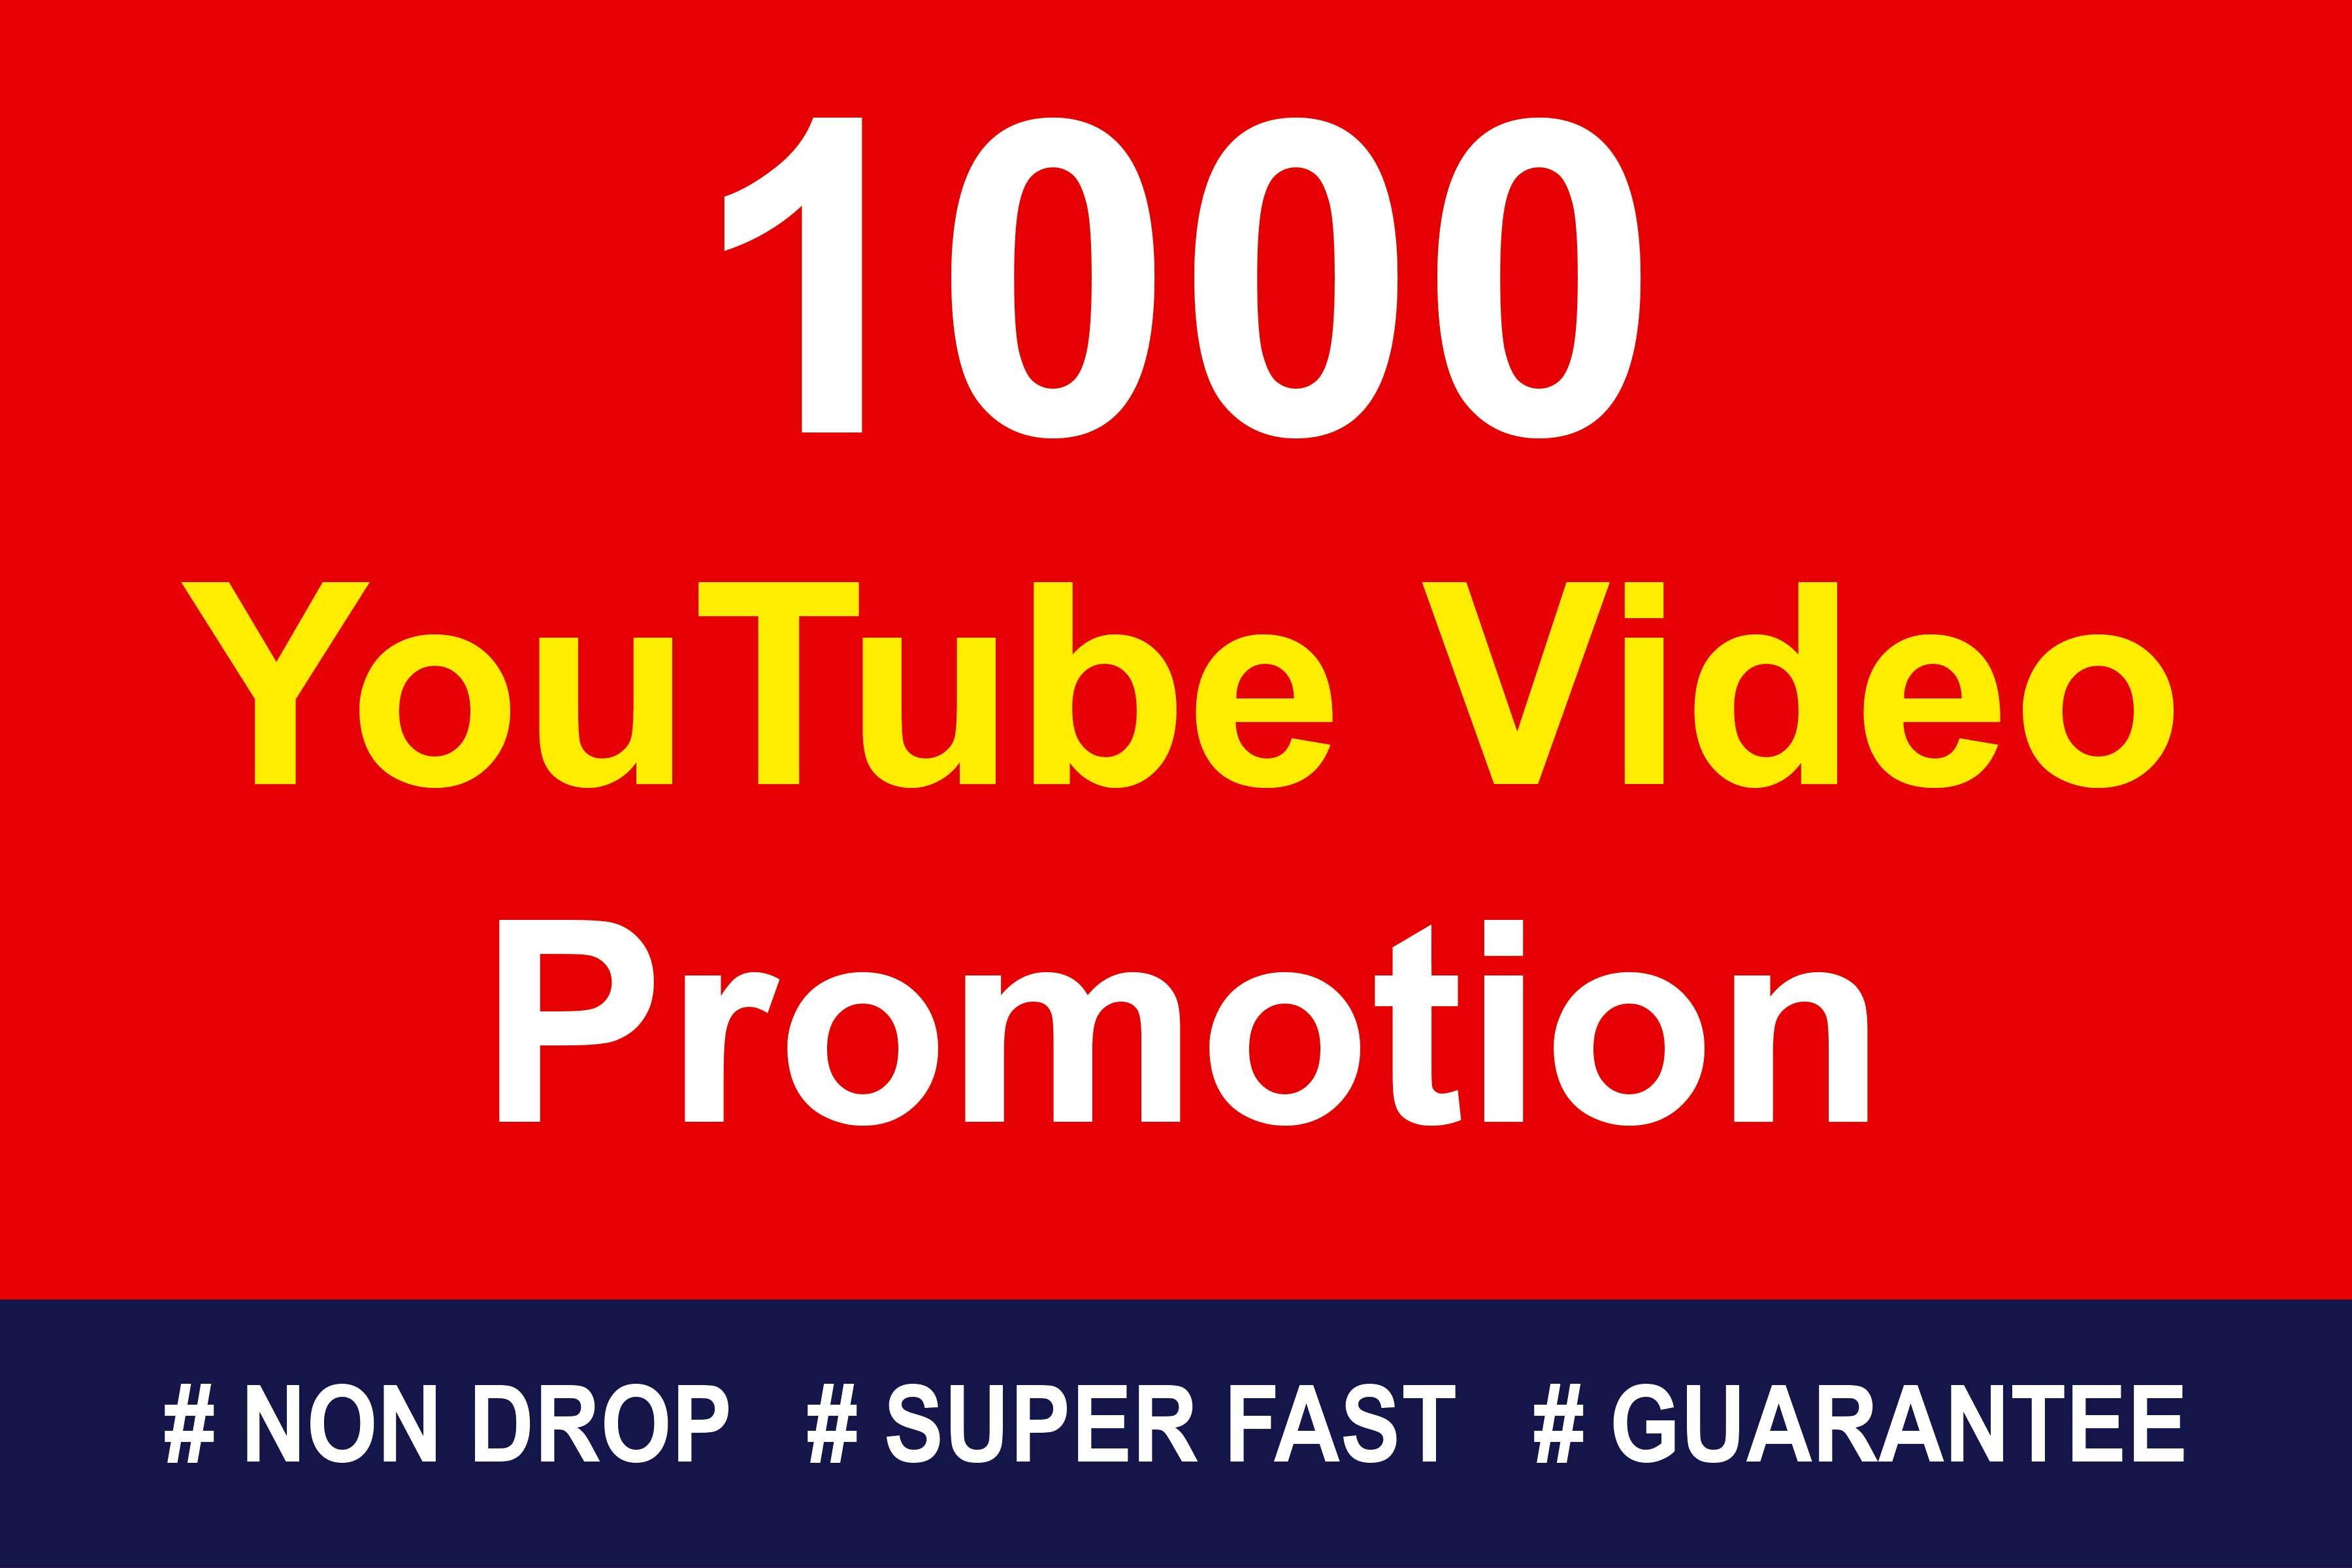 Organic-High-Quality-Video-Promotions-24-hrs-Delivery